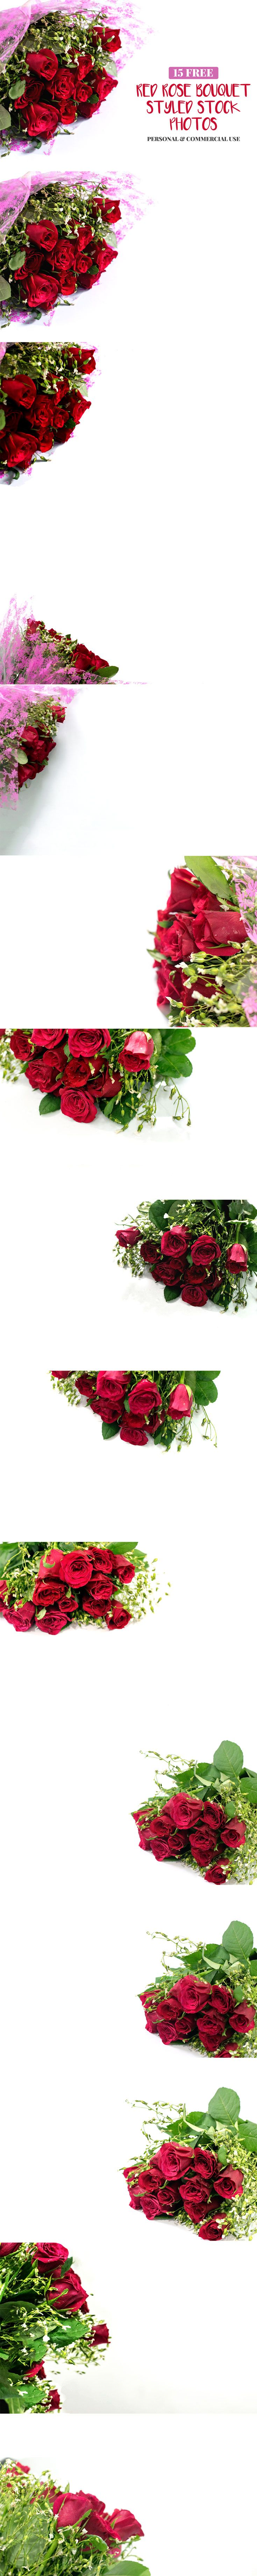 15 Free Red Roses Bouquet Styled Stock Photos can be cropped and used as a hero image for your website slider or website widgets, a featured image etc. via @creativetacos